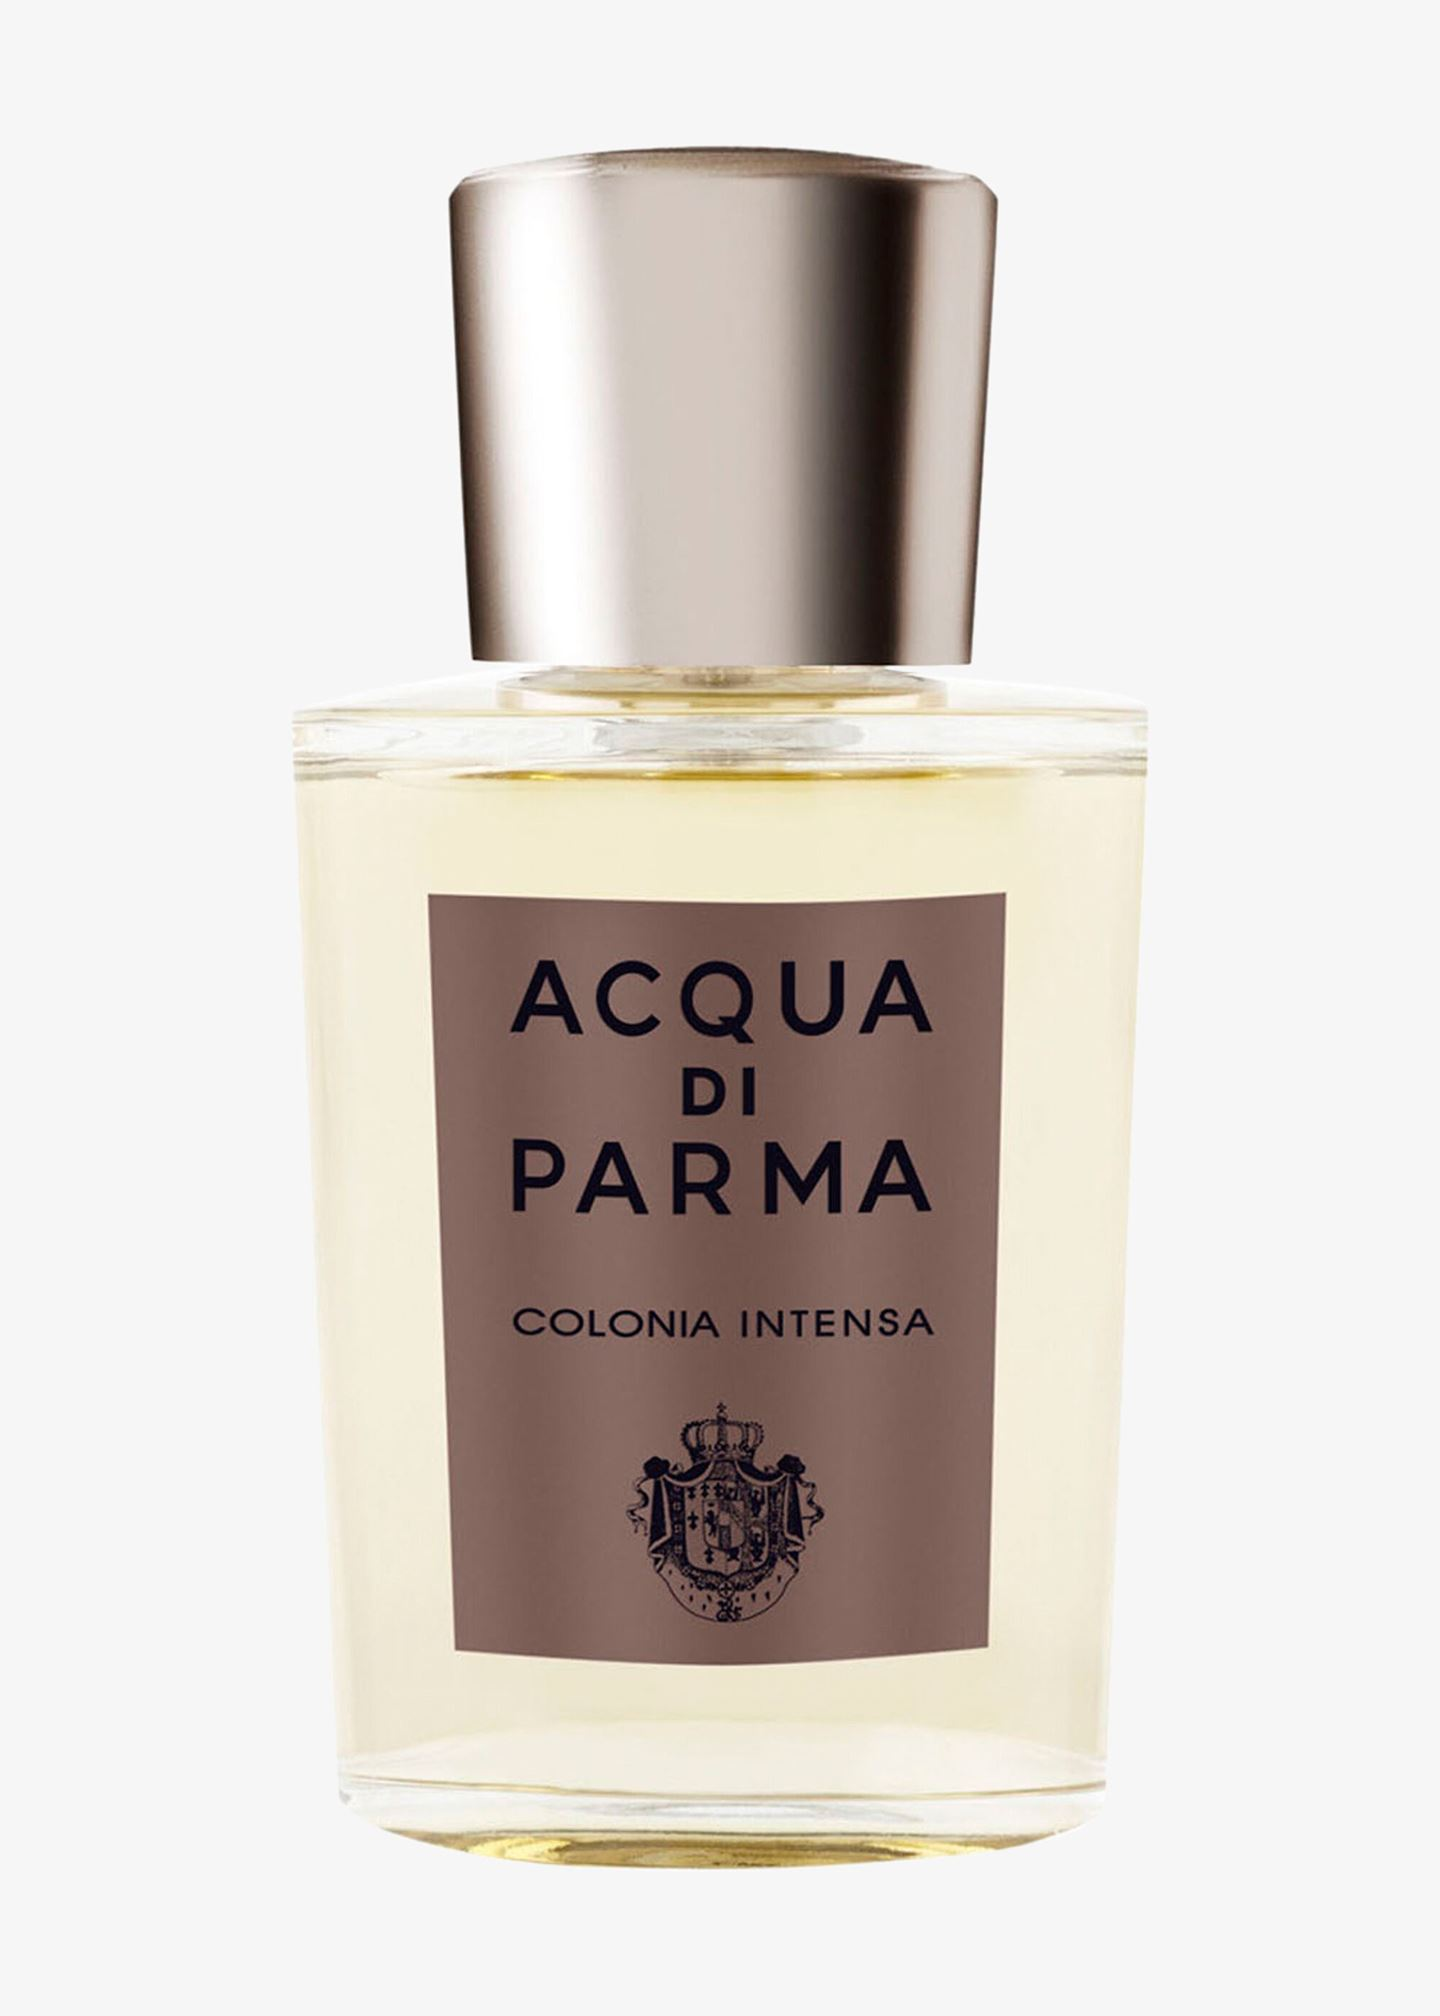 Parfüm  Acqua di Parma Colonia Intensa 20 ml EDC